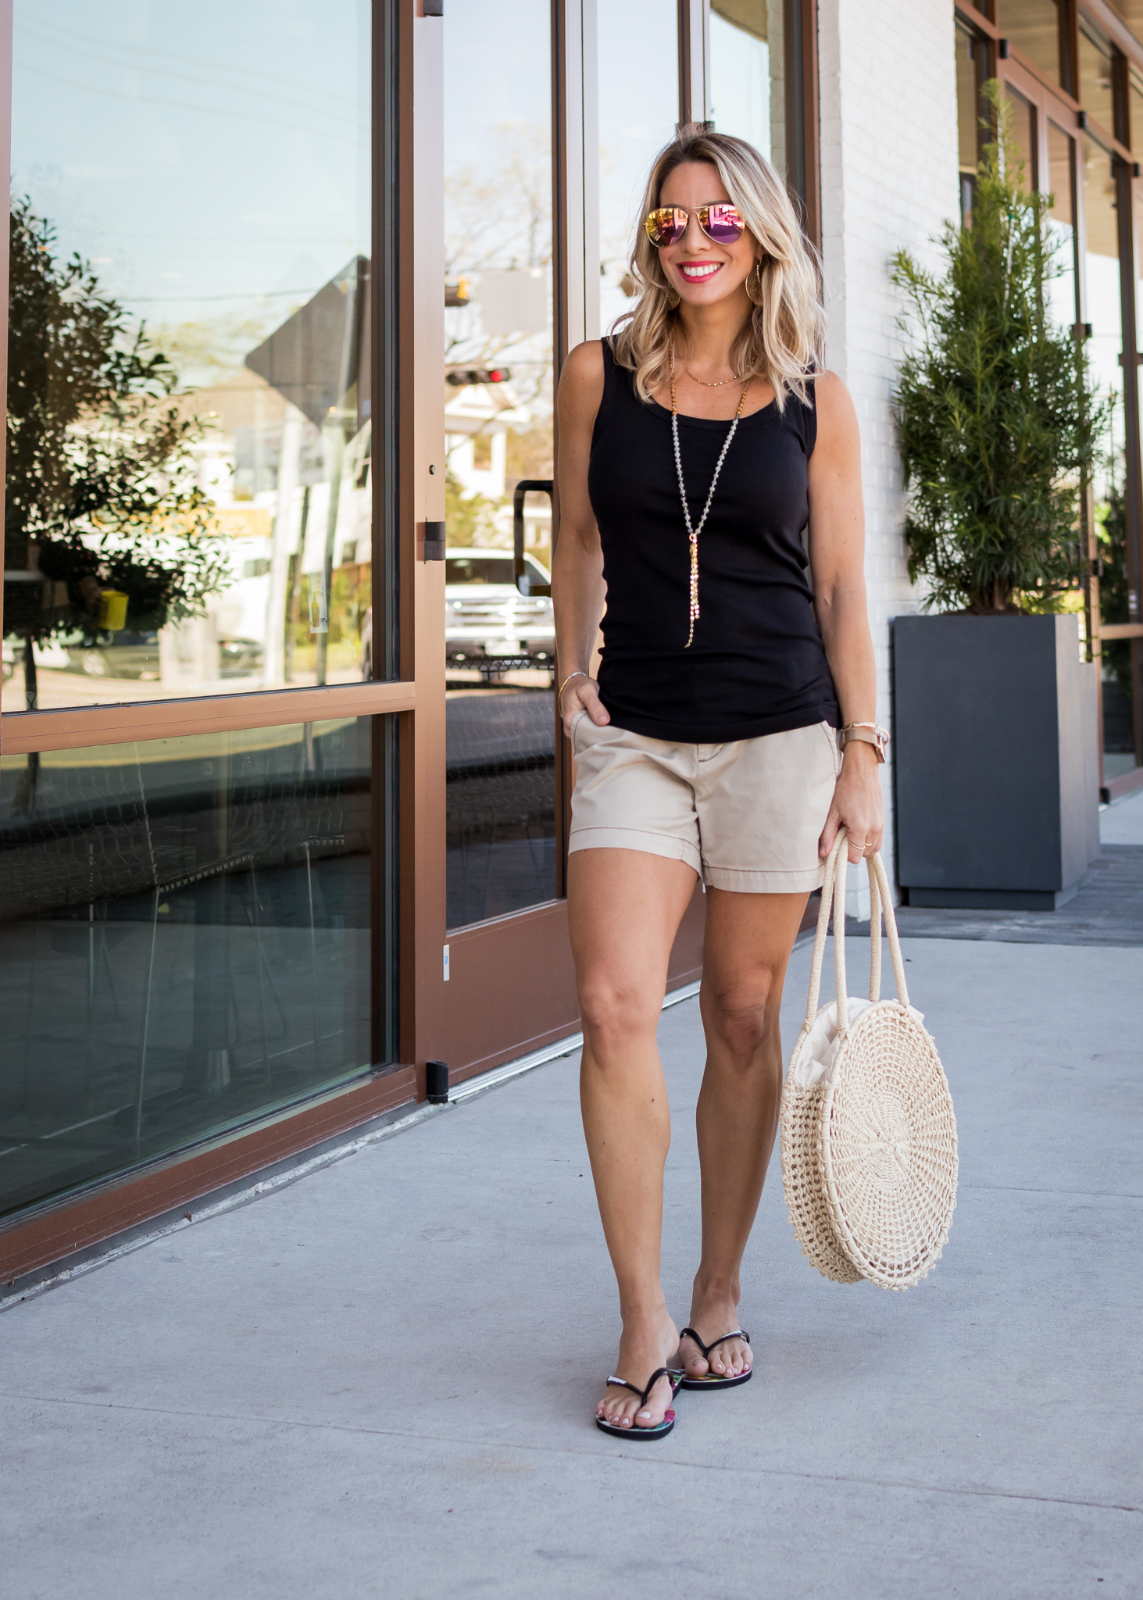 Khaki shorts black tank top and flip flops